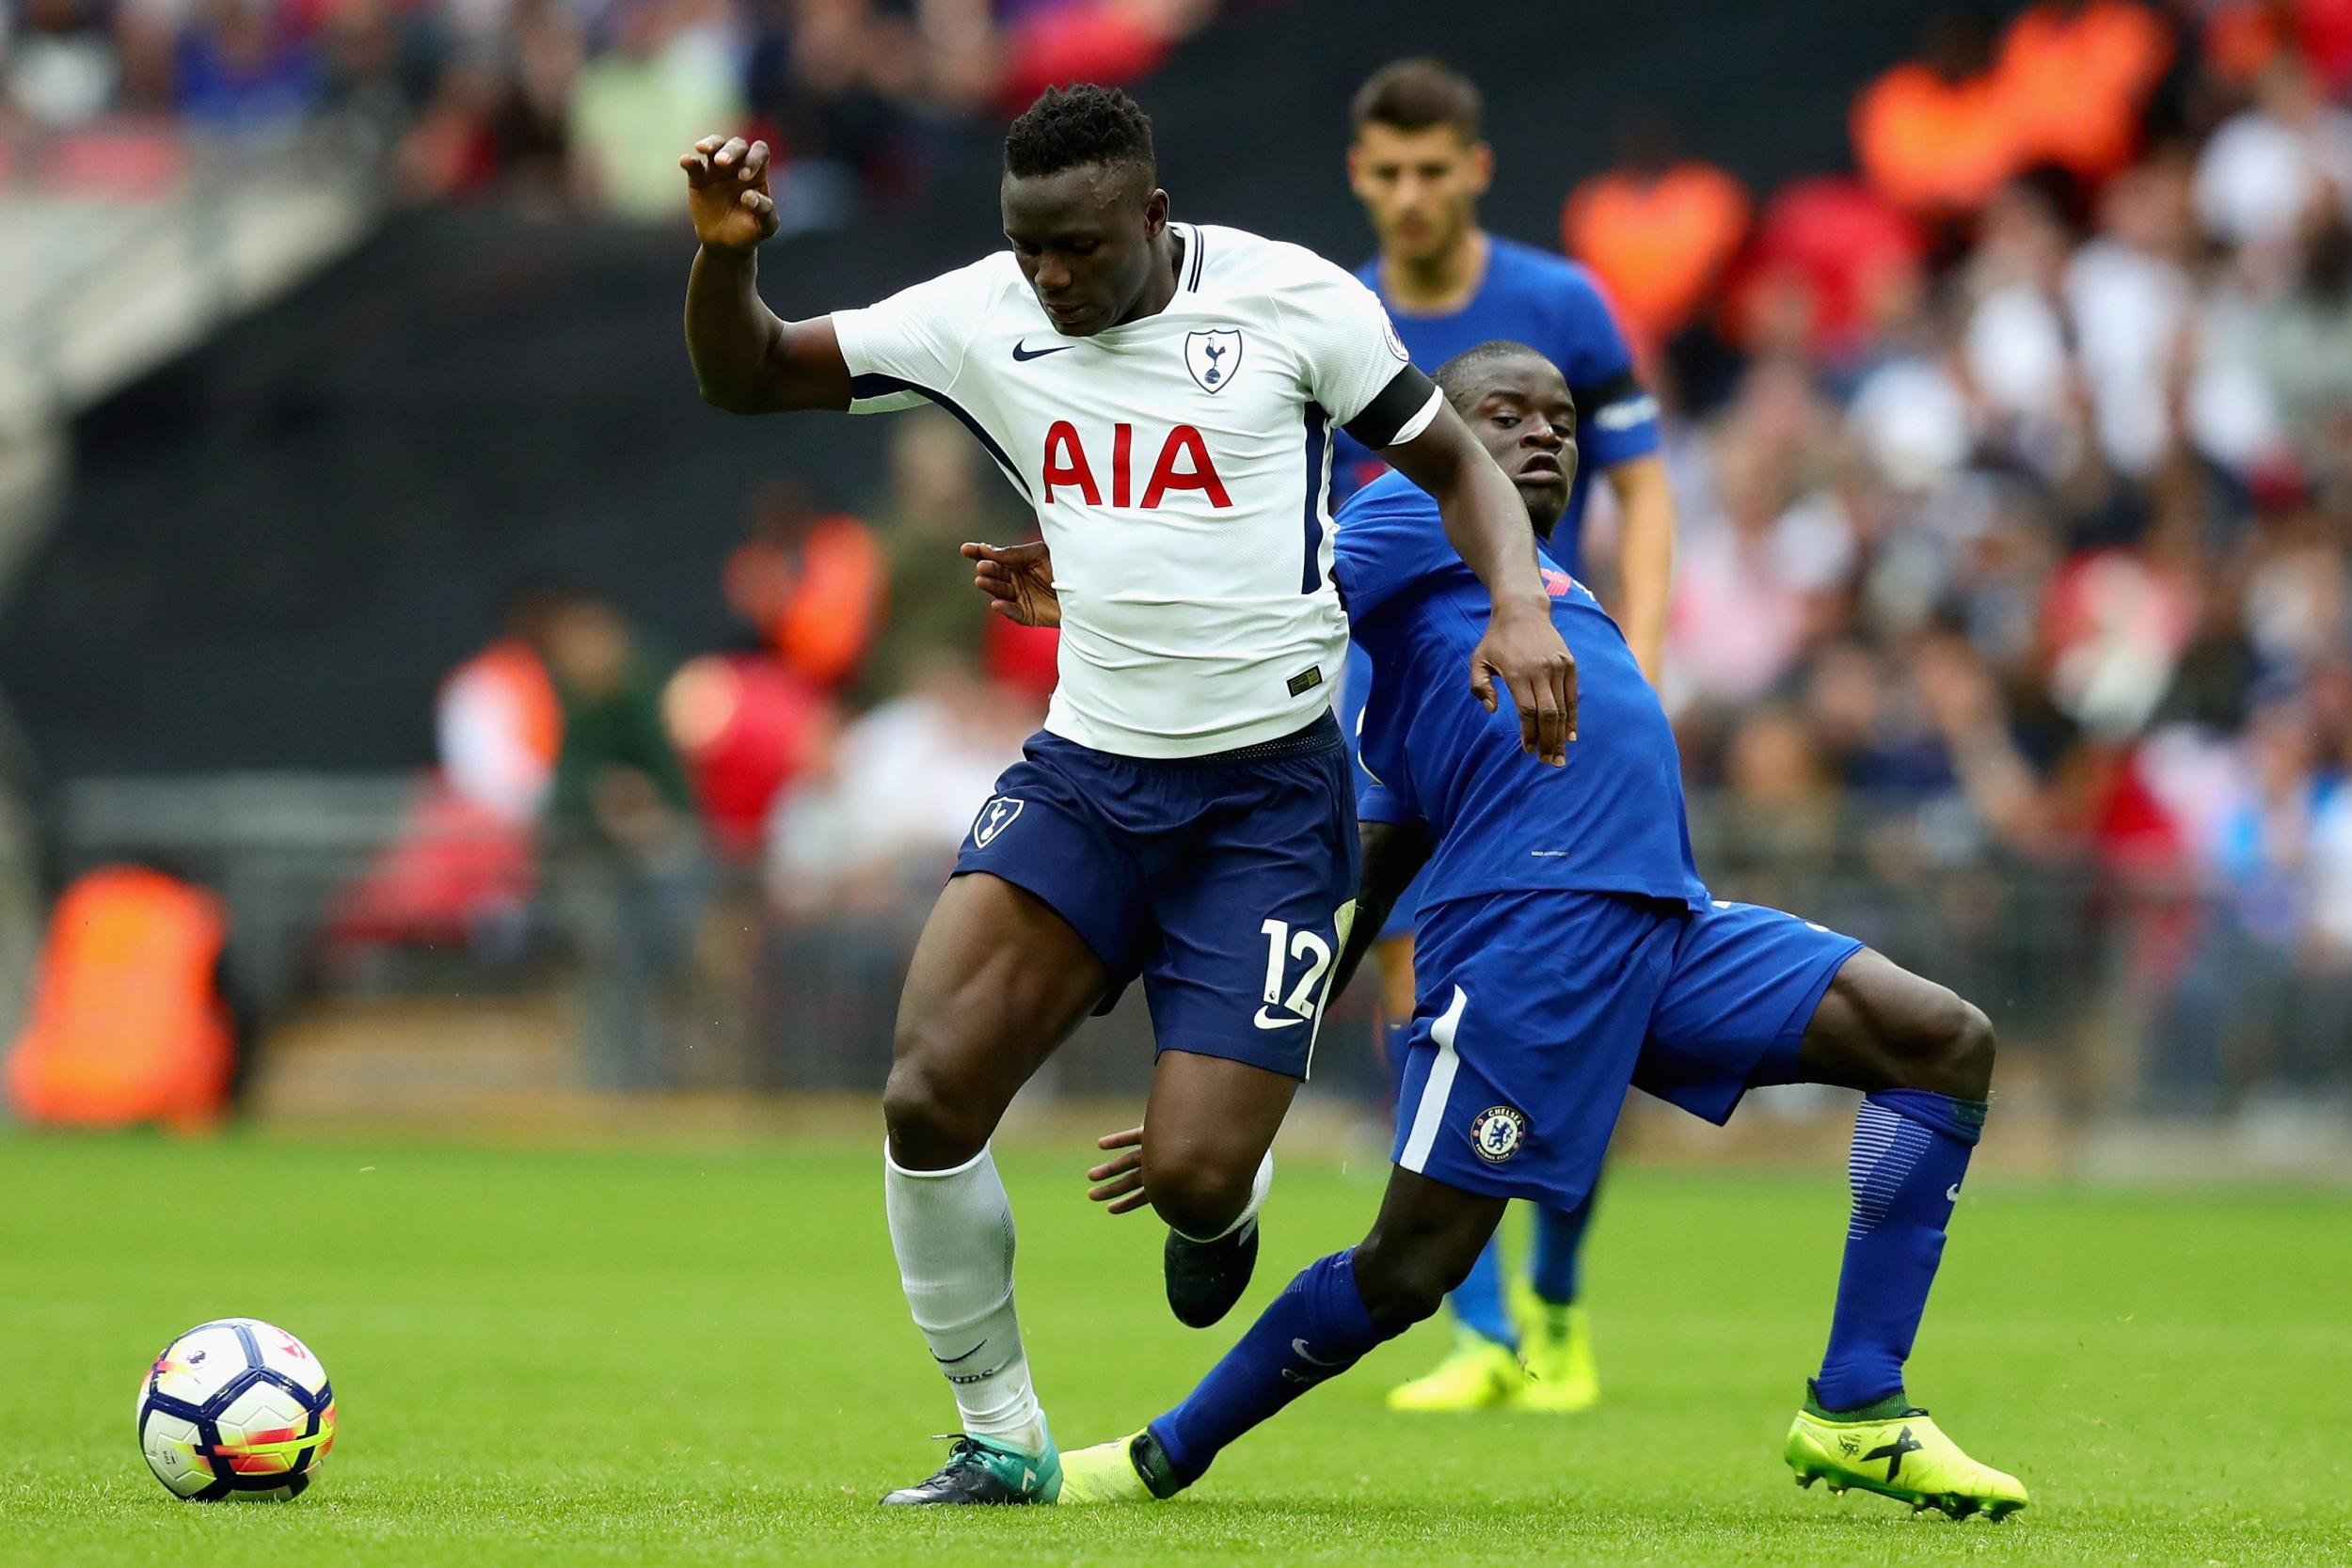 Mauricio Pochettino Hails The Return Of Very Important Victor Wanyama To Tottenham Training After Knee Injury The Independent The Independent